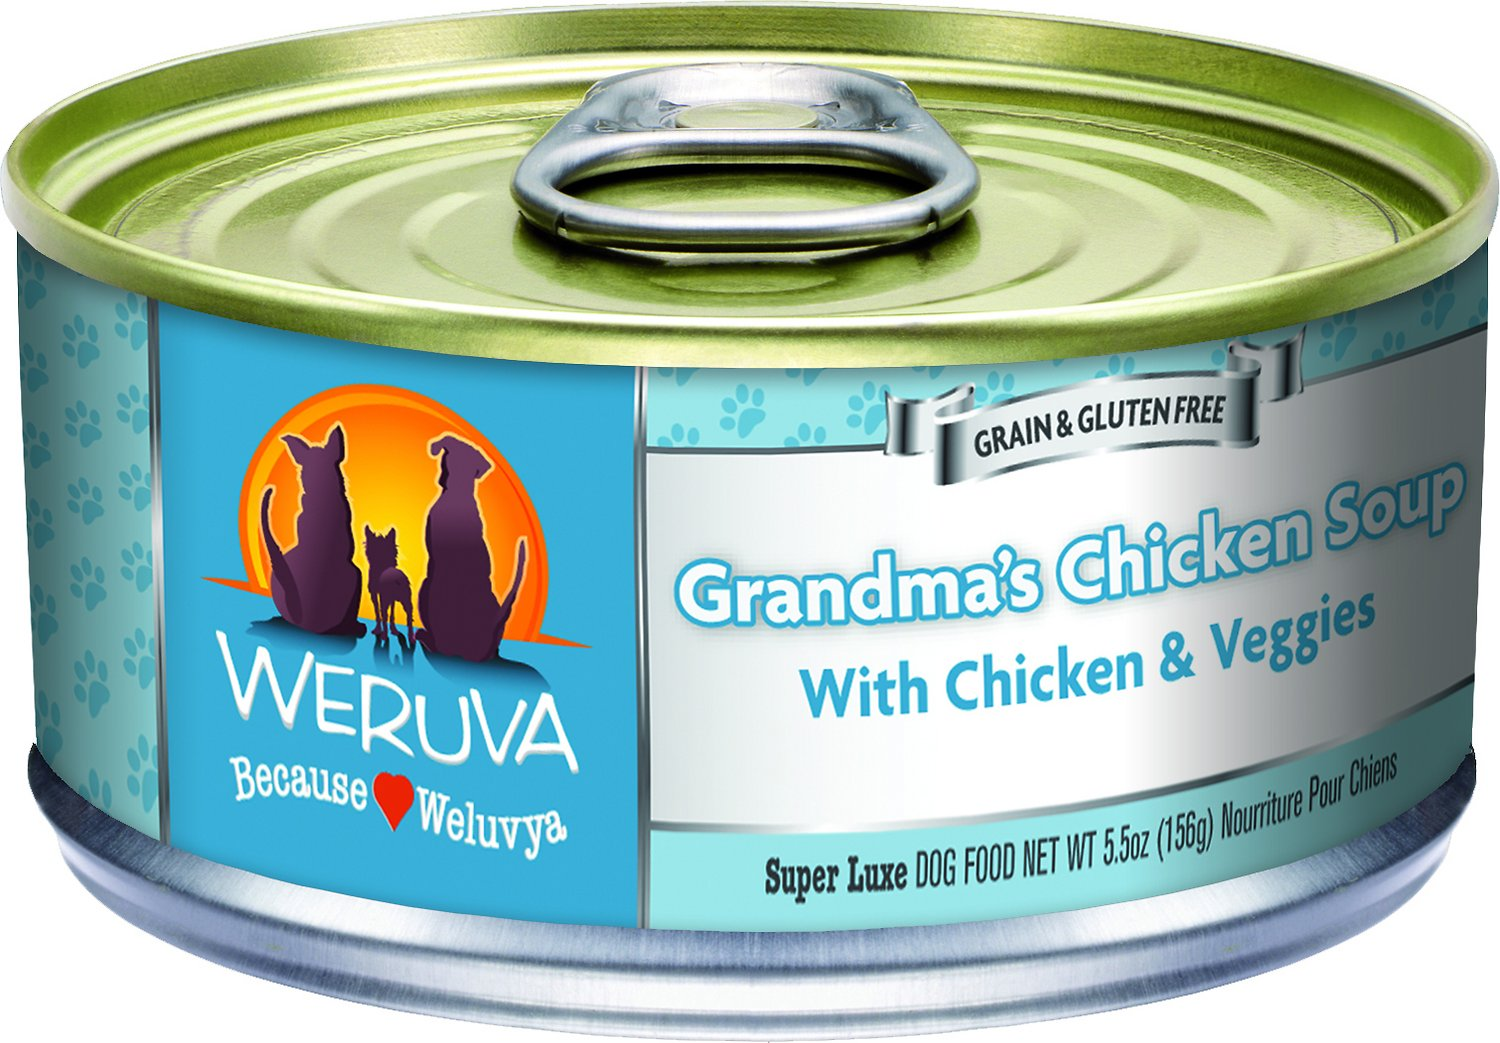 Weruva Dog Classic Grandma's Chicken Soup with Chicken& Veggies Grain-Free Wet Dog Food, 14-oz